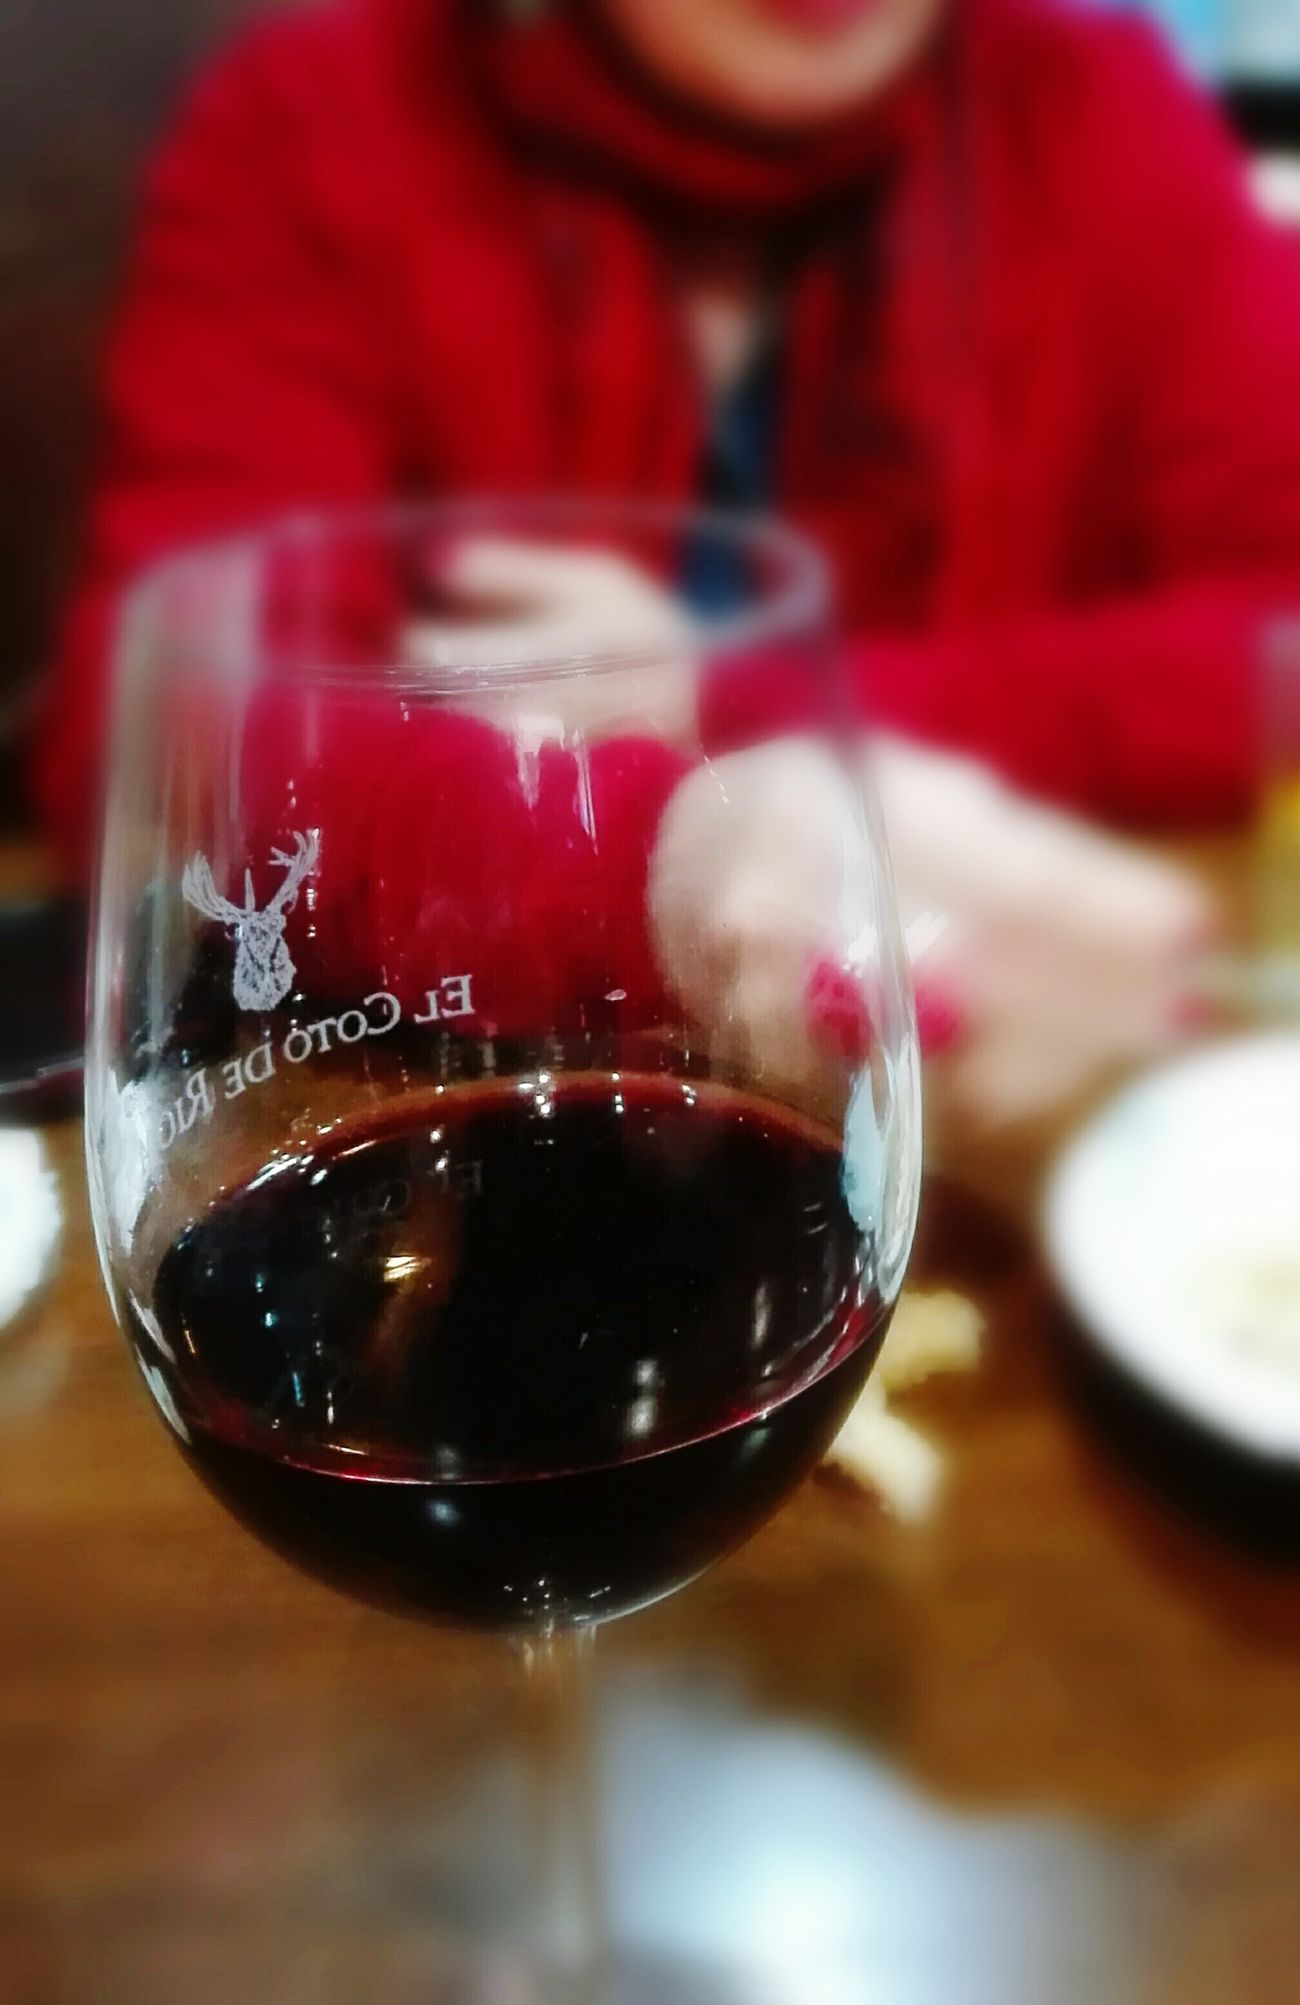 Indoors  Focus On Foreground Reflection Red Drink Food And Drink Close-up Drinking Glass Table One Person People Freshness Day Wine Red Wine Spain♥ Wine Moments Rivera Castro Urdiales (Cantabria)